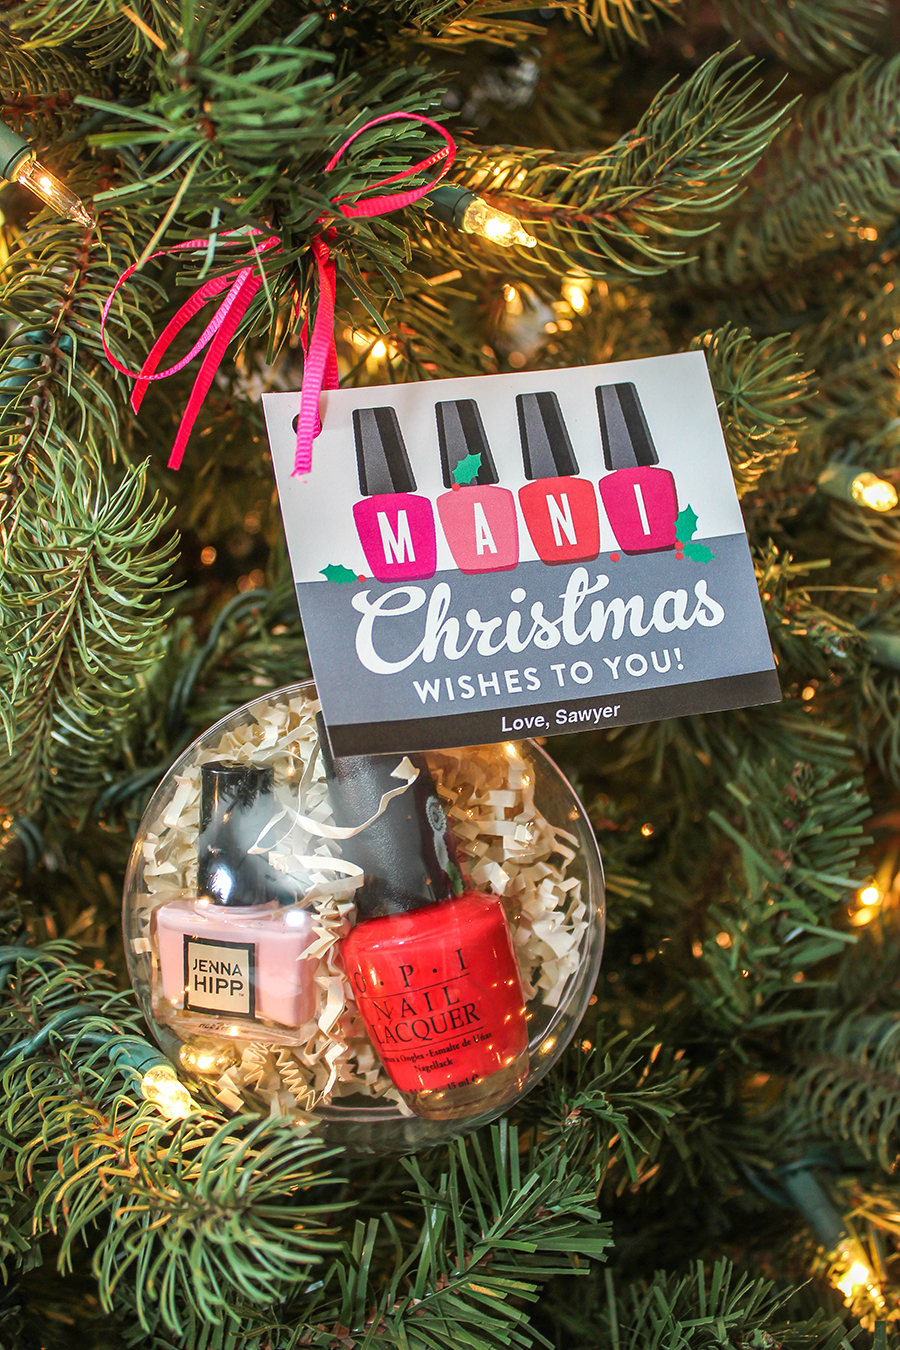 Mani Christmas Wishes nail polish gift idea, nail polish, mani, manicure, diy Christmas gift, Christmas gift ideas, Just Add Confetti, mani in ornament, diy christmas ornament, Mani Christmas wishes to you, free printable